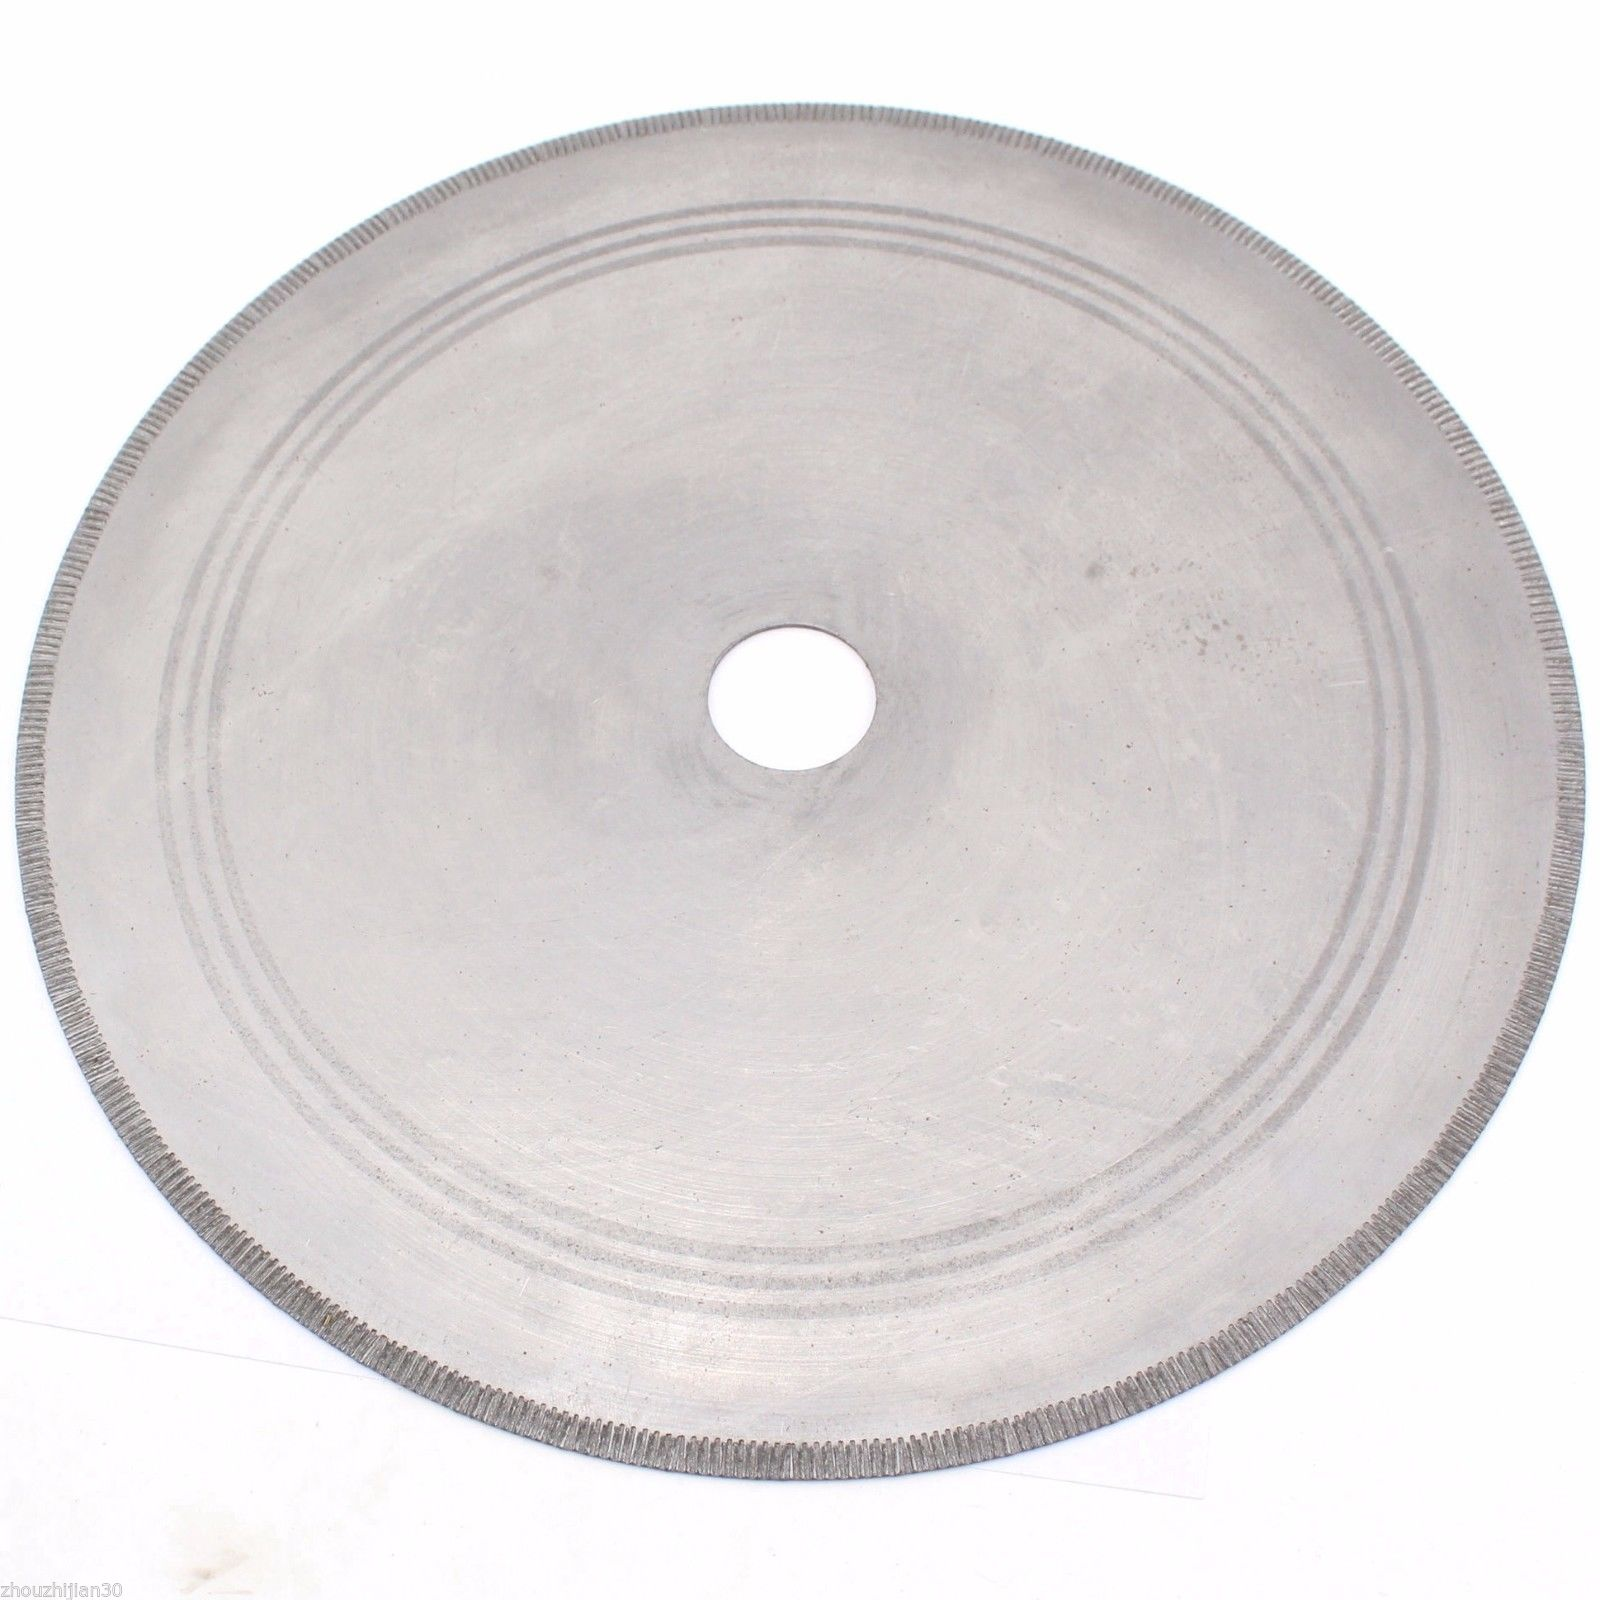 14 Diamond Lapidary Saw Blade Notched Rim 0.05 Rock Slab W bushing 3/4 5/8 ILOVETOOL [ 0 5mm thickness] 4 100mm kerf ultra thin rim diamond resin bond saw blade free shipping save your materials and money